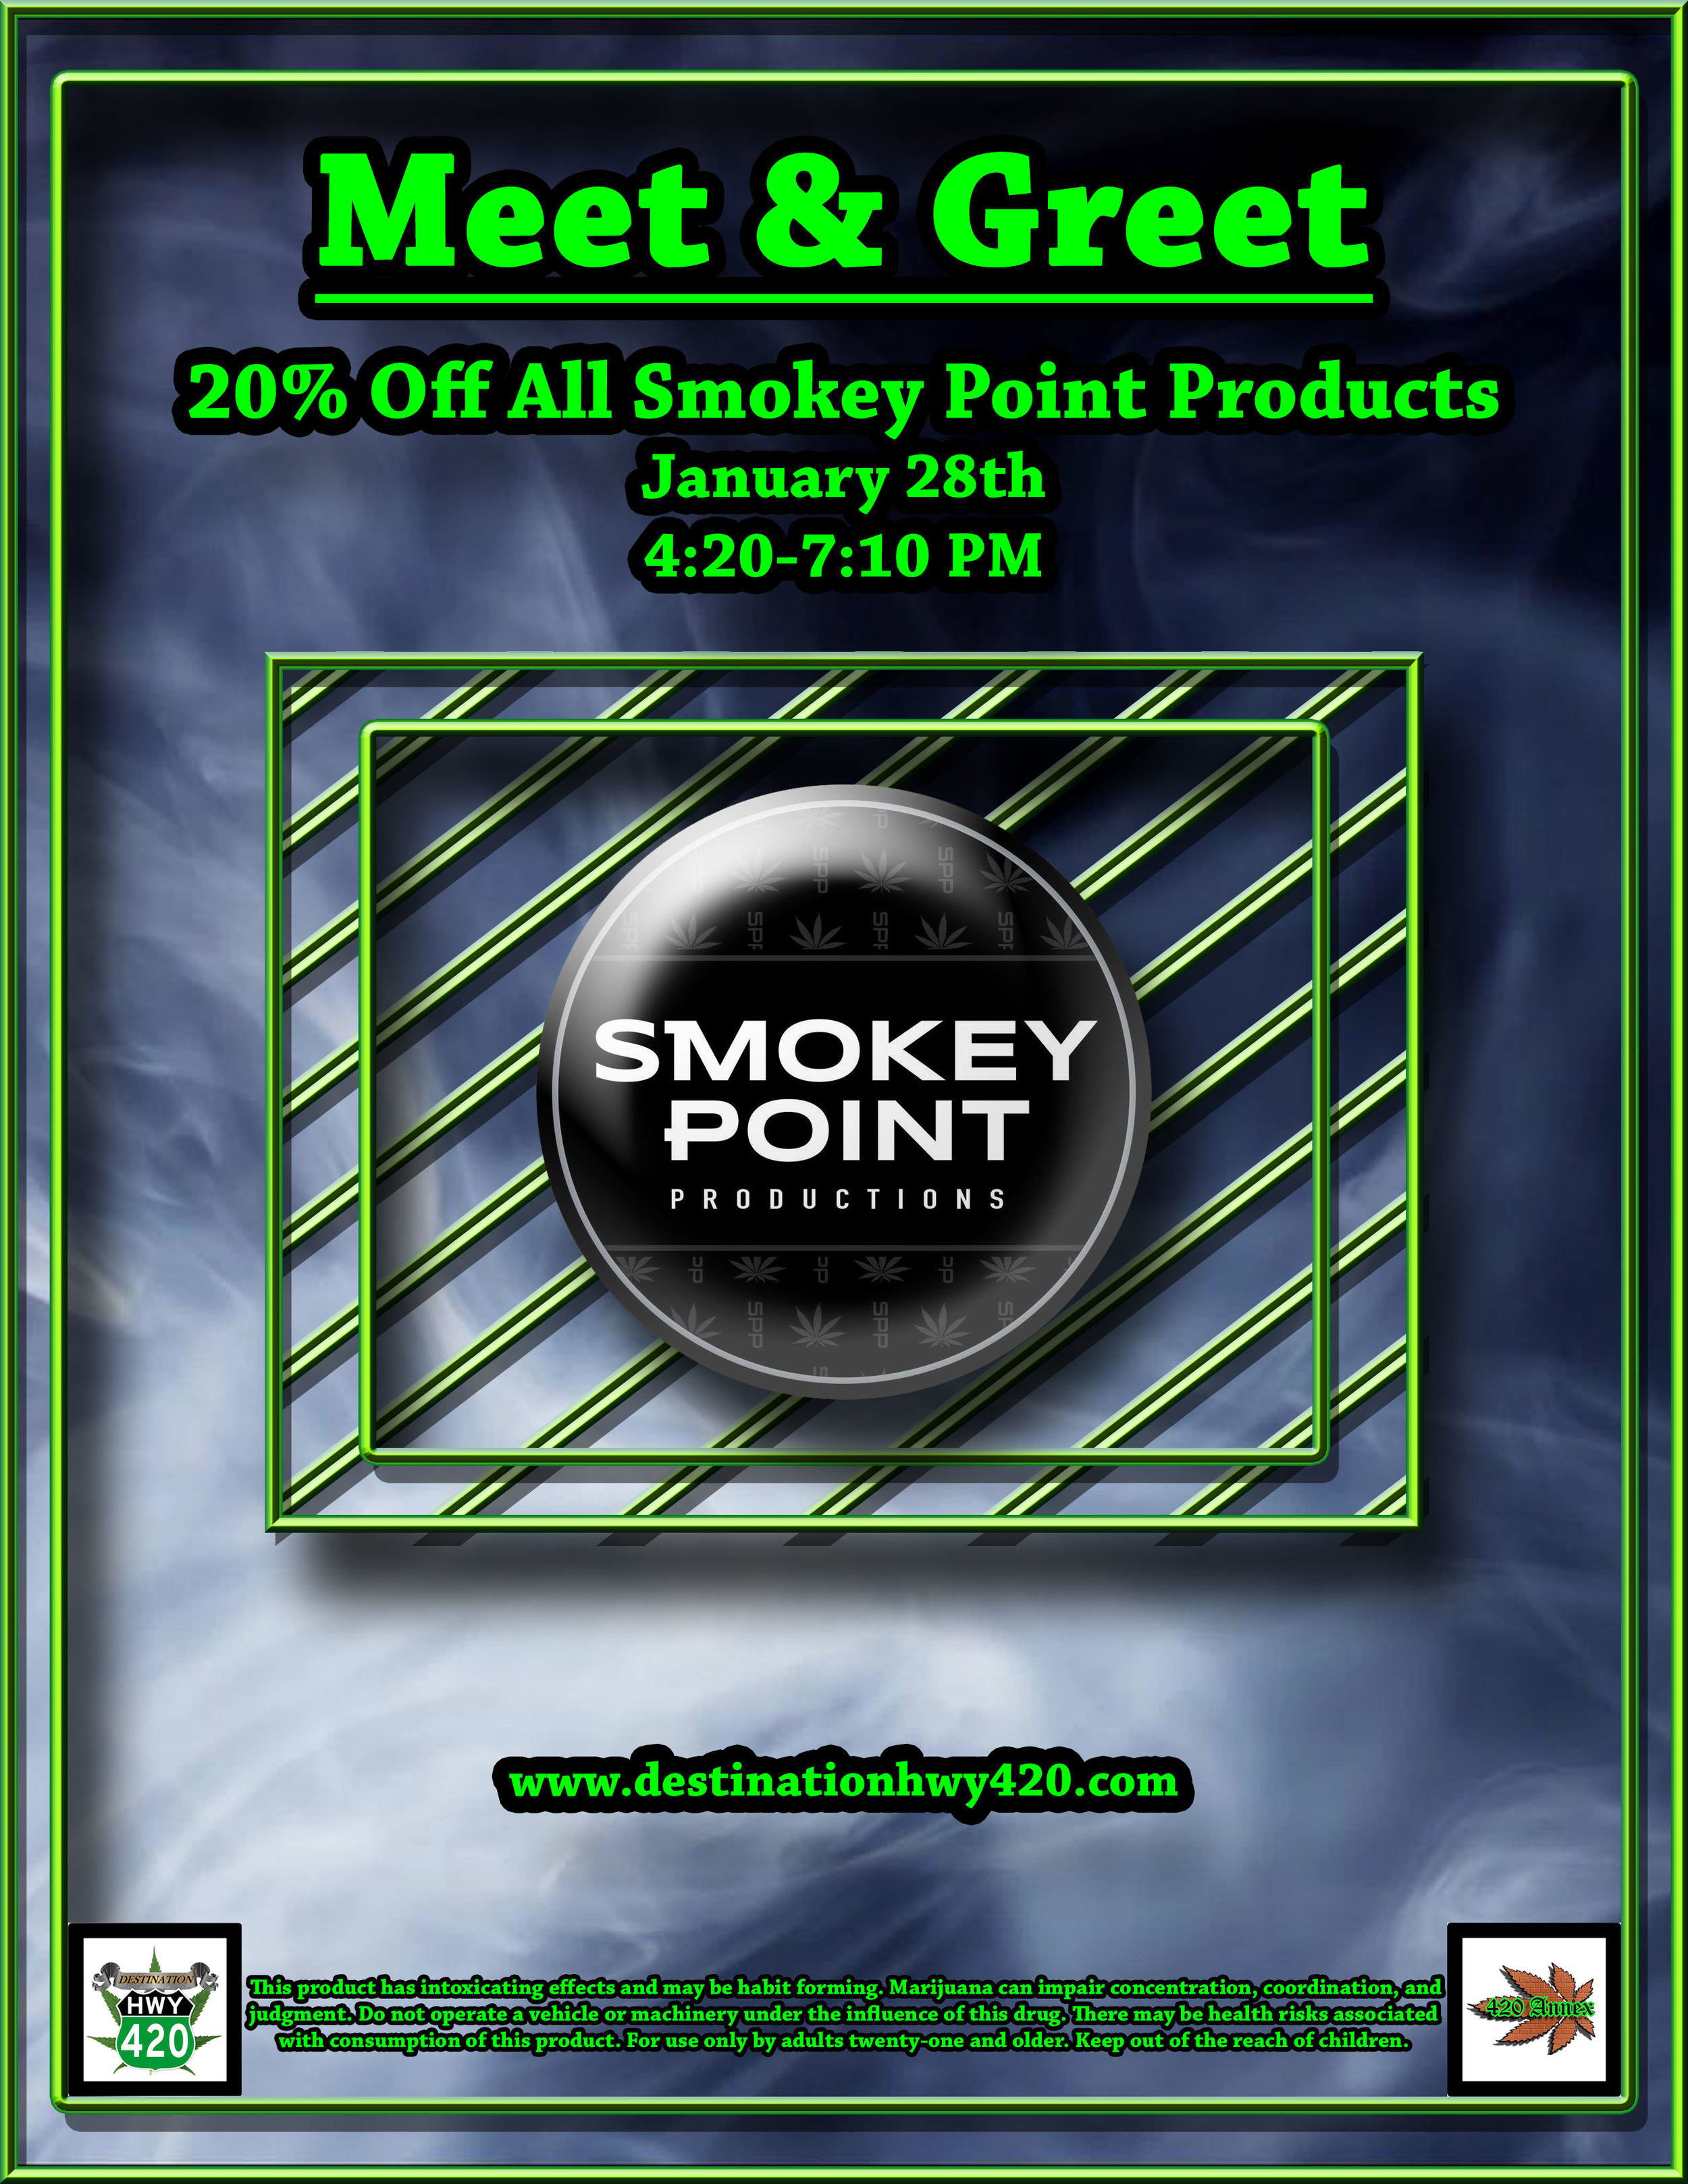 Smokey Point Productions, a marijuana producer/processor from Arlington, WA will be visiting Destination HWY 420 for a Meet & Greet. SPP offers amazing cannabis products for great prices, such as: Flower, Infused Prerolled Joints, Vape Cartridges, Concentrates, and Edibles. Come visit us in East Bremerton to learn more!